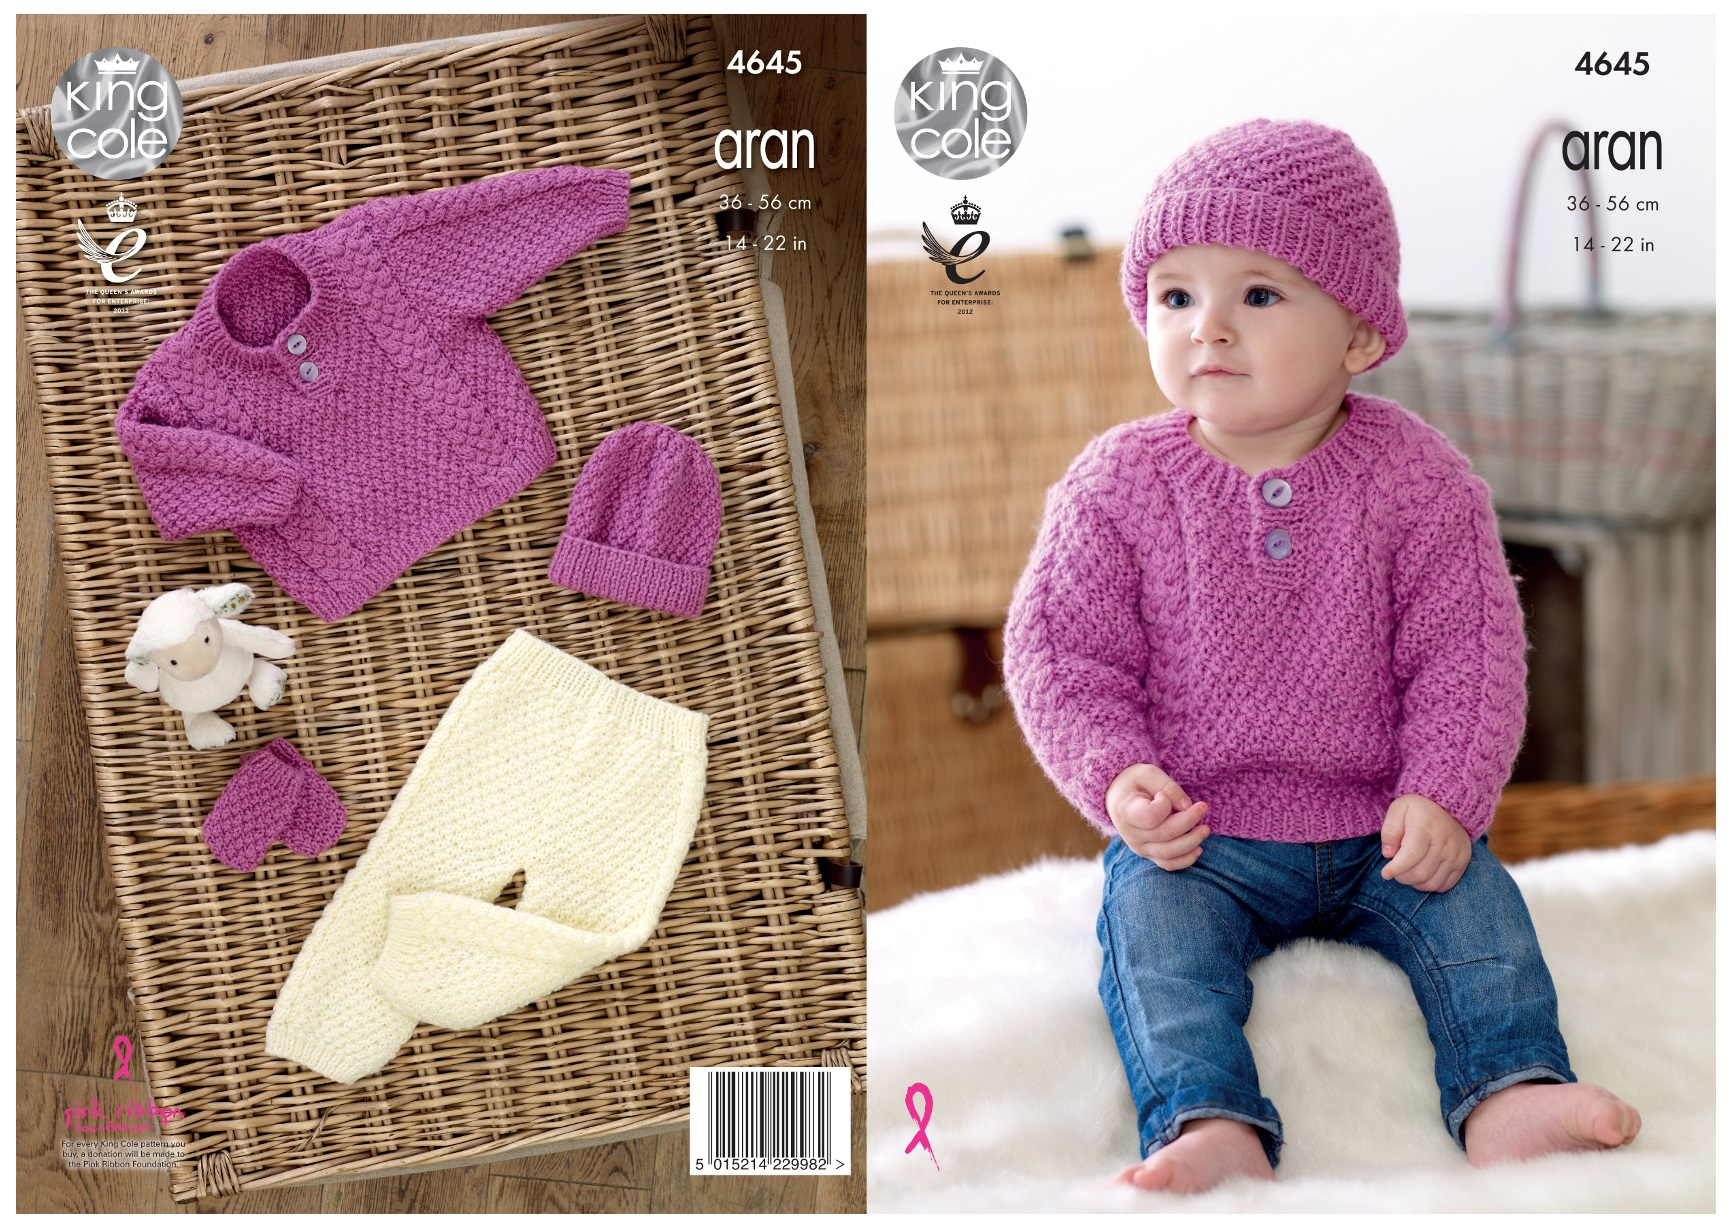 King Cole Childrens Aran Knitting Pattern 2905:Sweater,Jackets,Hat  /& Mitts